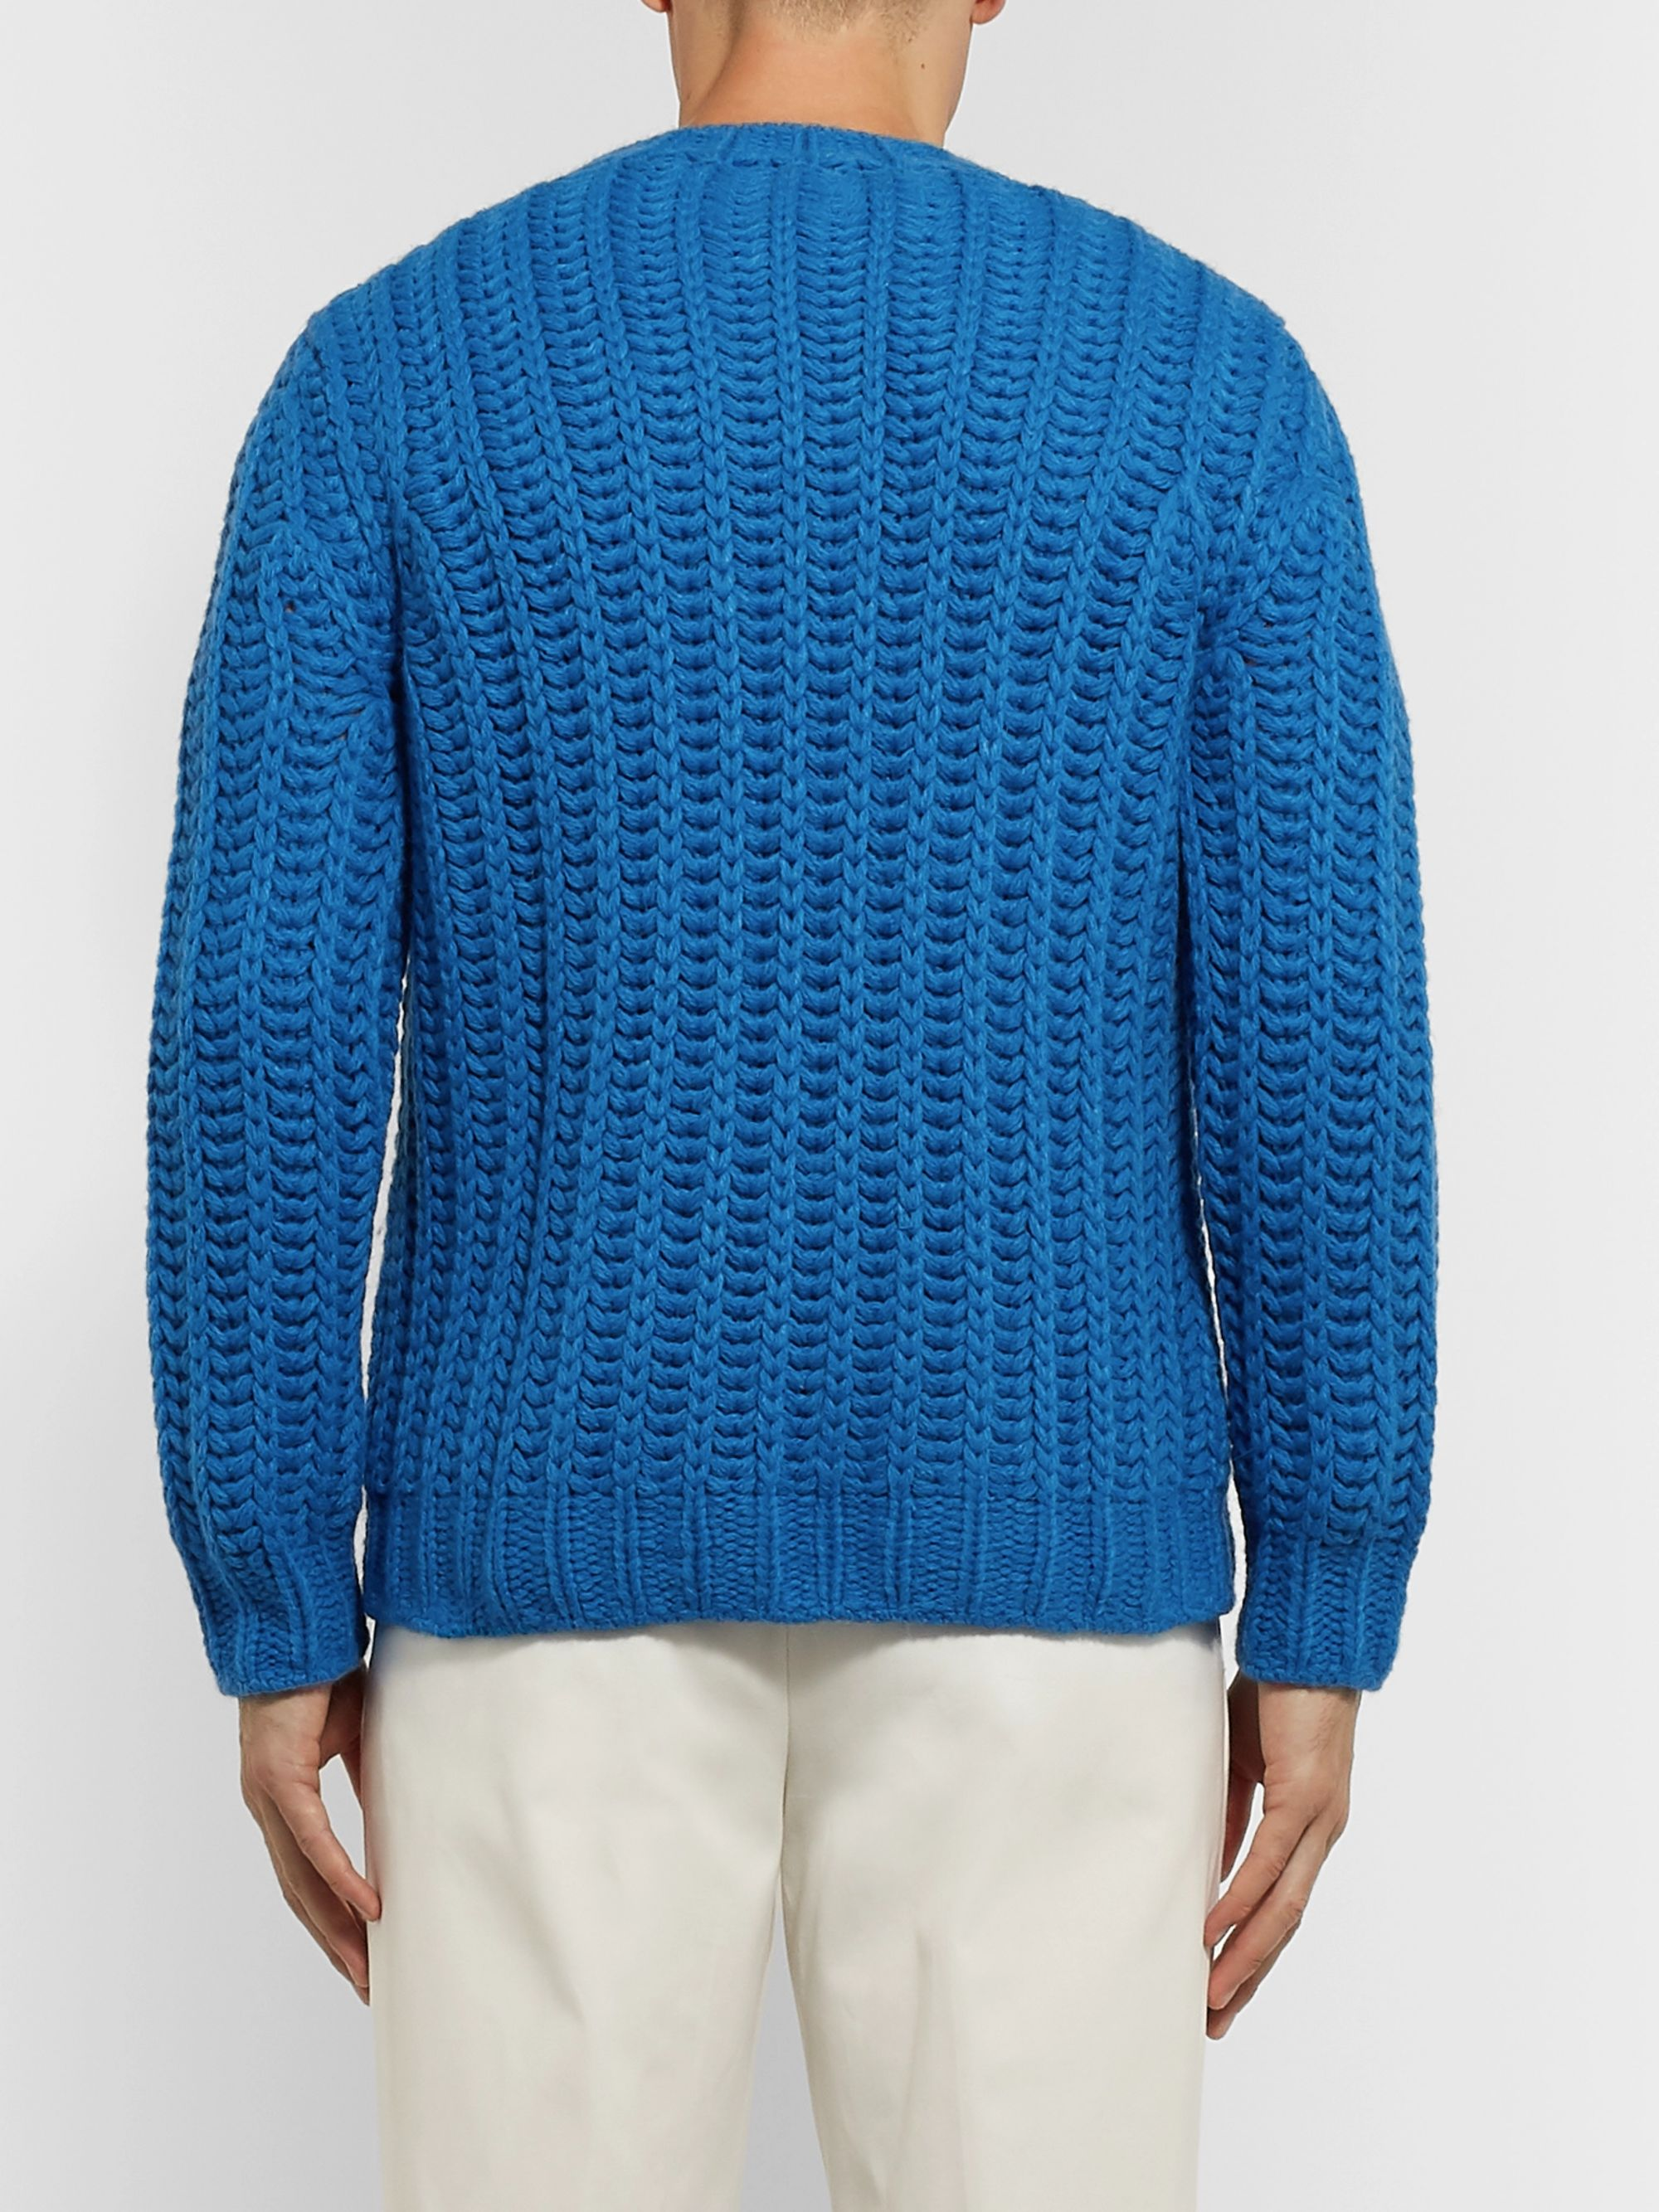 Altea Knitted Sweater